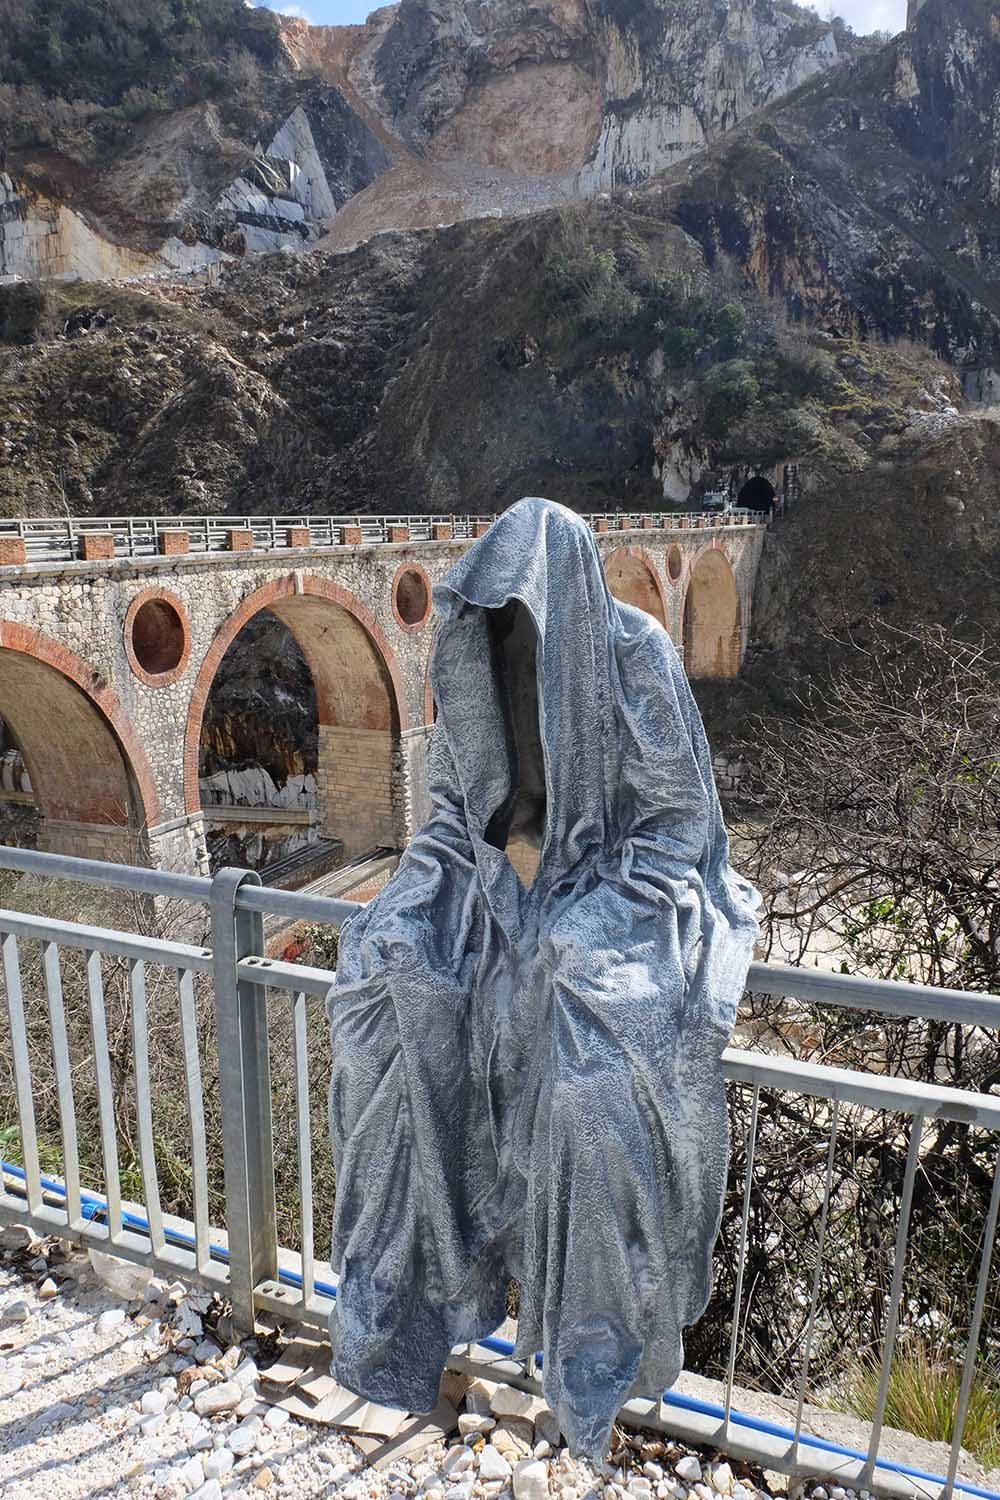 guardians of time manfred kili kielnhofer modern sculpture contemporary fine art design arts statue faceless religion stone marble carrara 0847